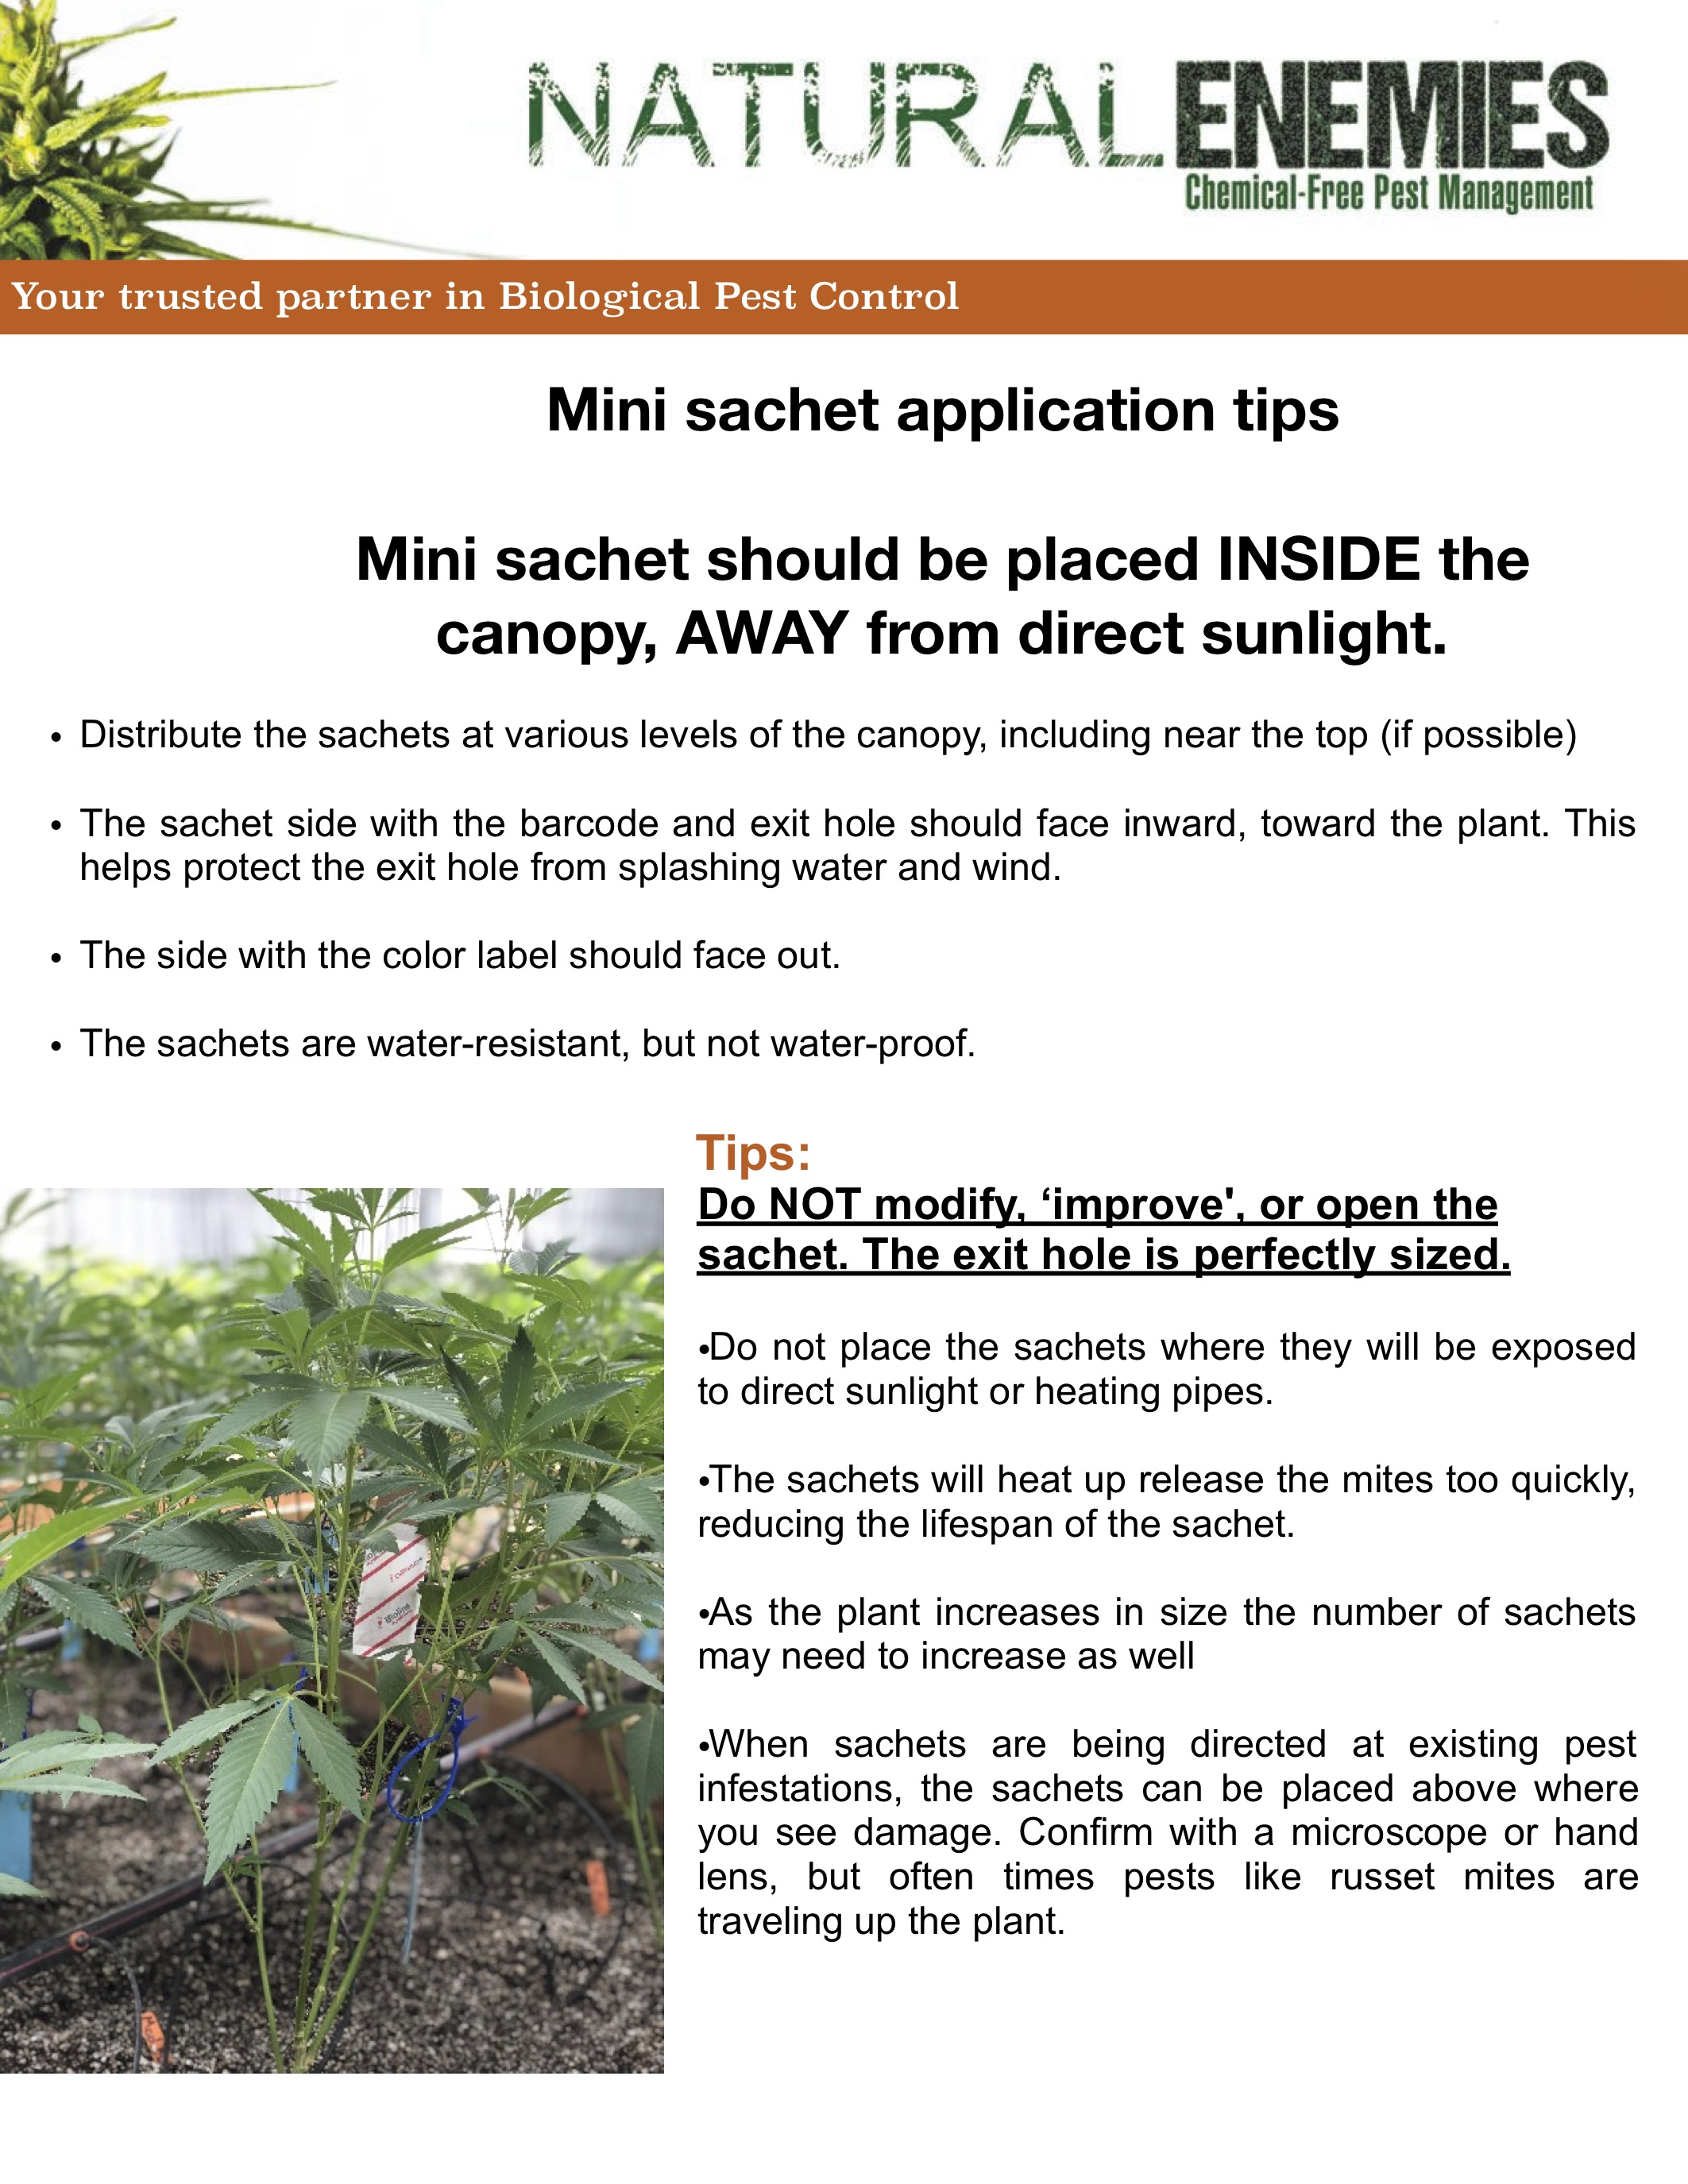 application-directions-for-mites-mini-sachets.jpg